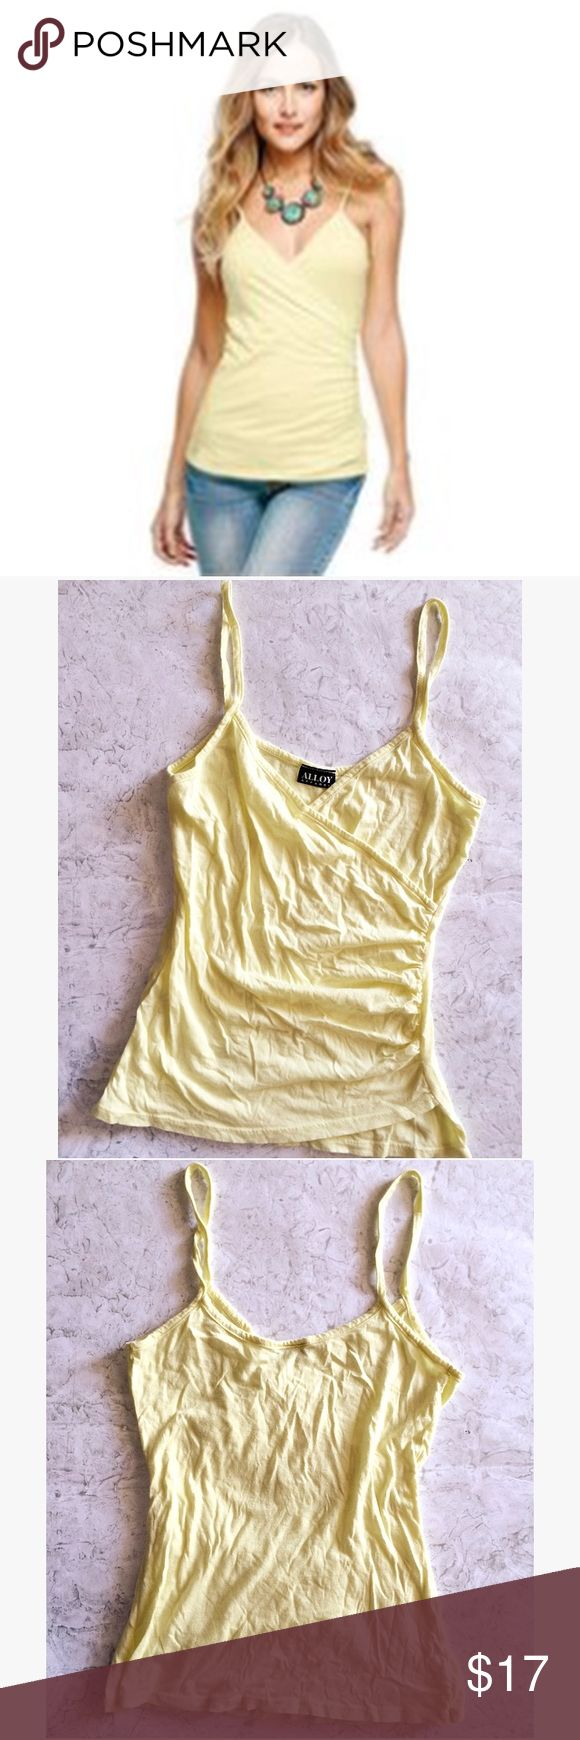 🆑 Surplice Cami Top A dandelion yellow cami top with a surplice silhouette. The ruching on the side is designed to accent your curves. Light-weight & super soft jersey fabric is great for summer and spring! Bought  from Alloy Apparel (online). Condition: worn only once. Examine all photos and ask any questions before buying! No trades • No modeling • CLEARANCE - price is firm unless bundled! Lulu's Tops Camisoles